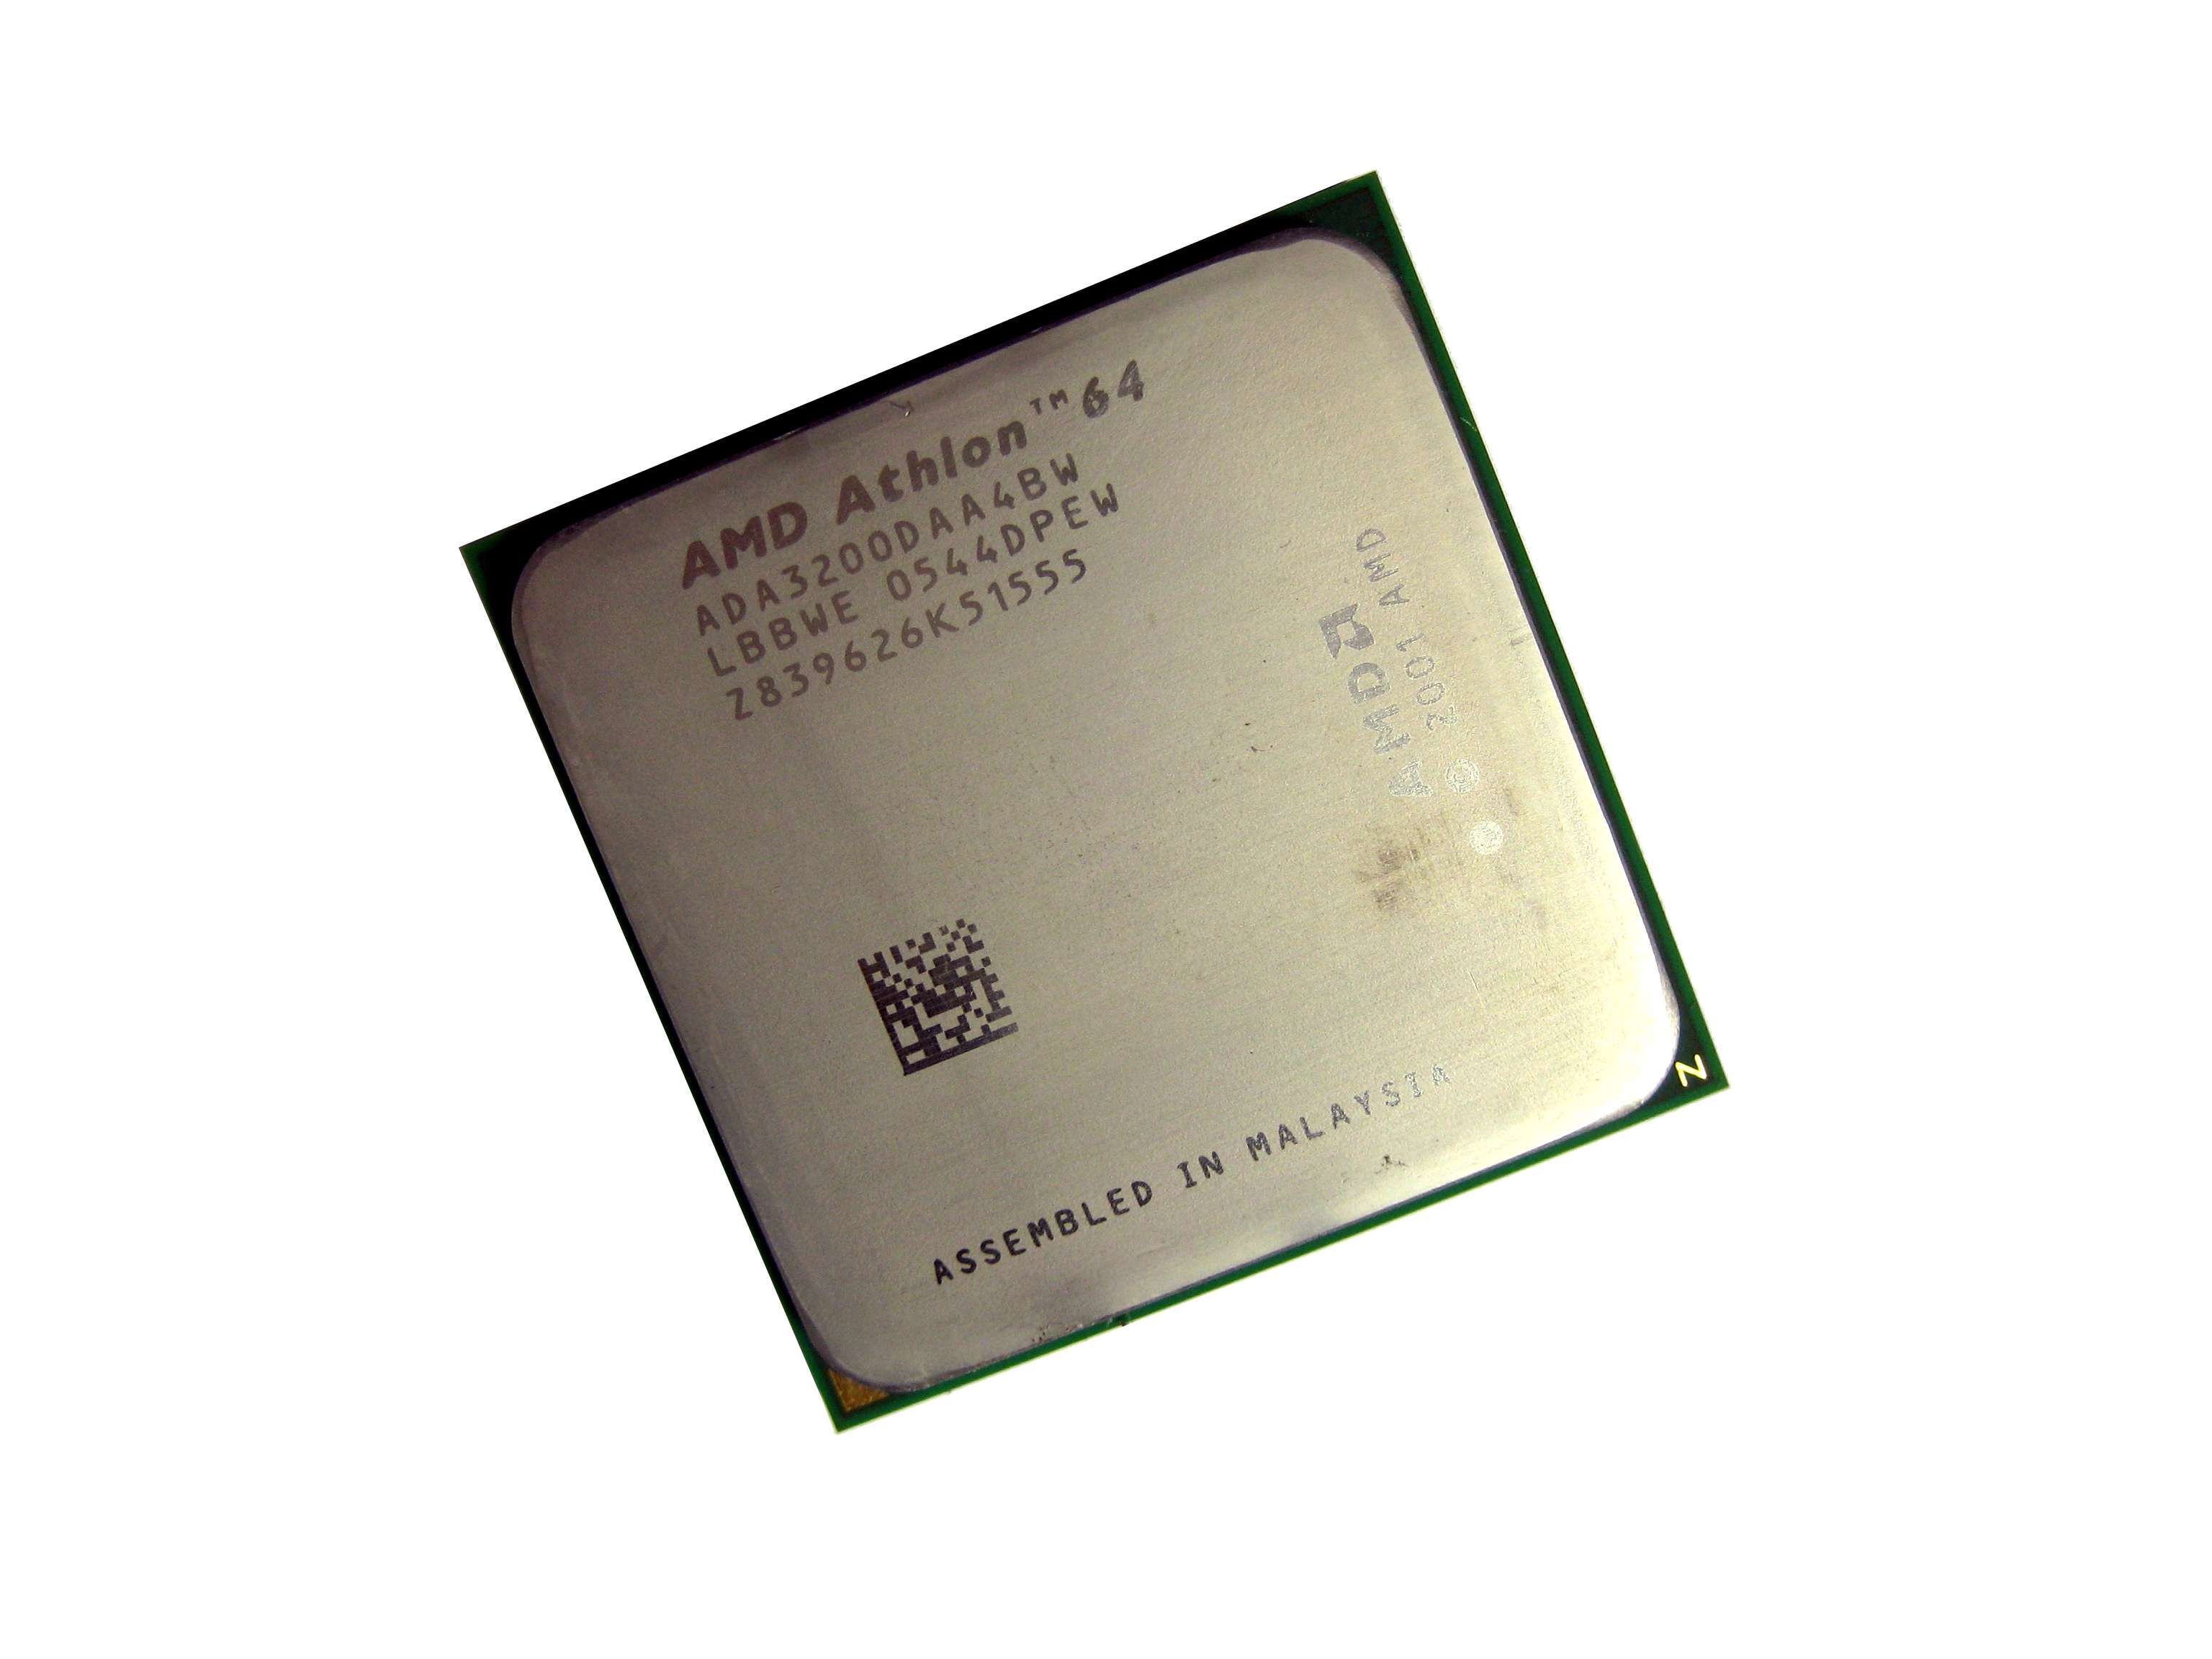 AMD ADA3200DAA4BW Athlon 64 3200+(2.0GHz)L2/512KB Socket 939 Processor